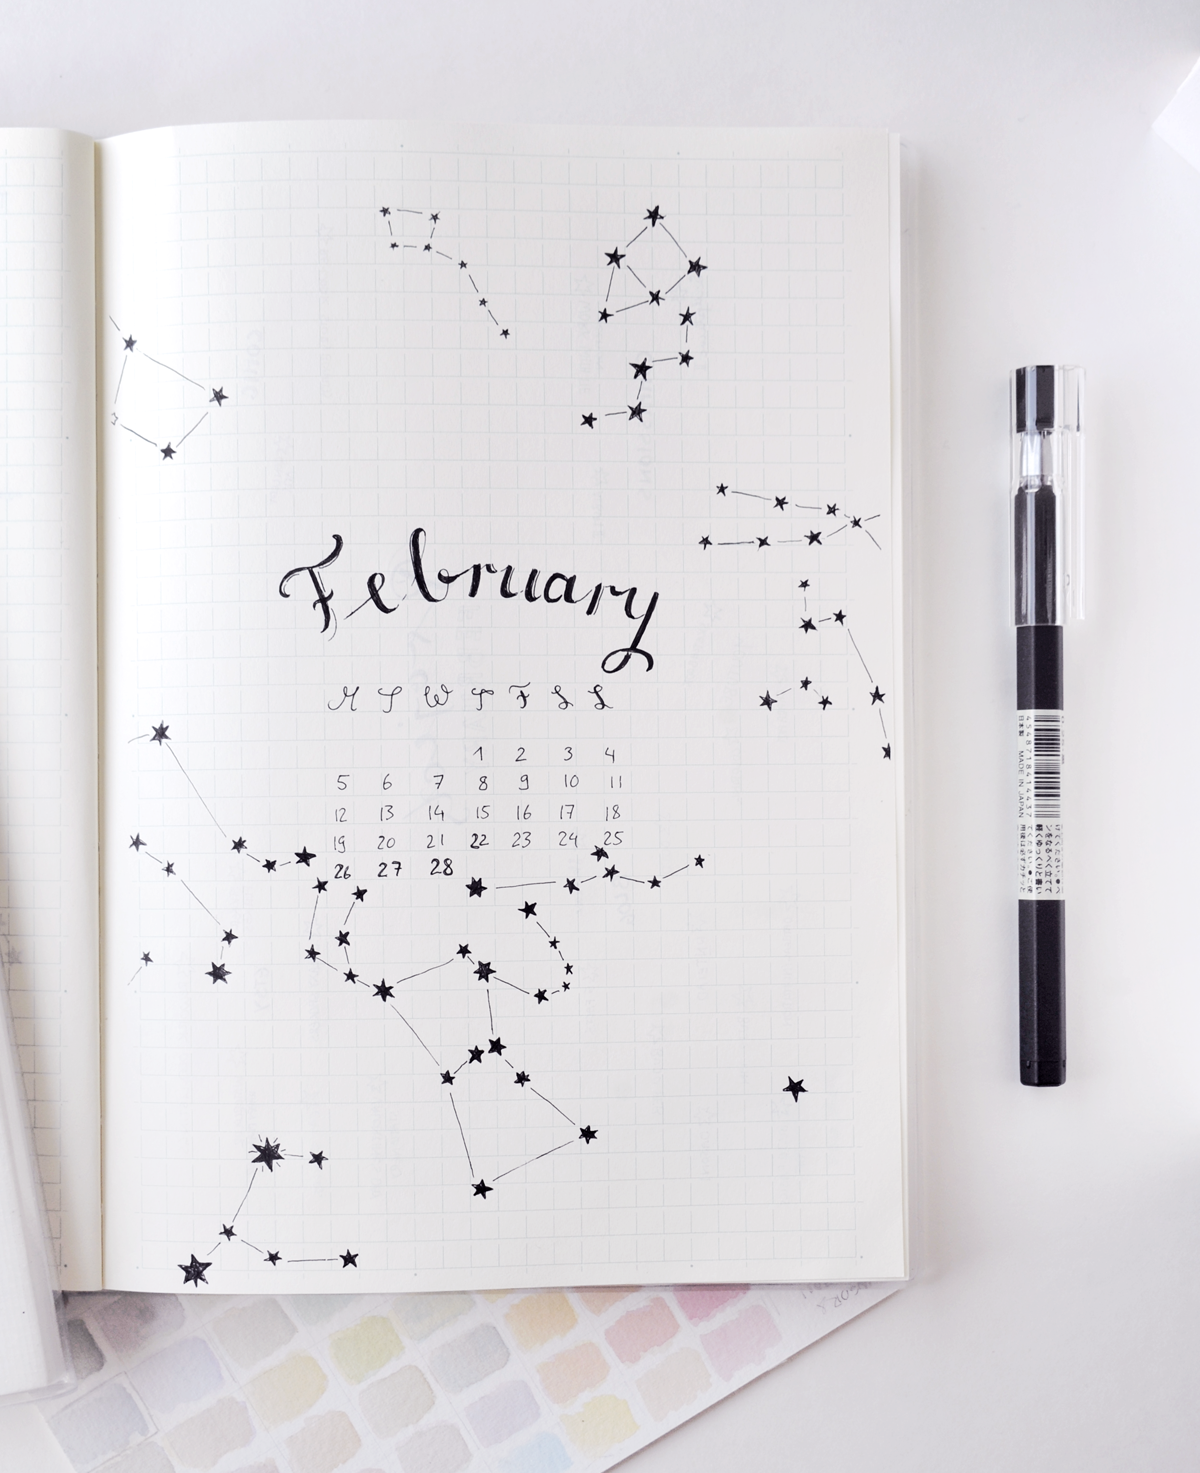 Bullet Journal Layout: If You Need a Creative Outlet  Cover pages for a new month are the perfect place to start if you just want a moment to reflect, doodle, and be creative.  No matter if you use a planner, a random notebook, or if you keep a journal: Take a look at the month ahead (even if we're already in the middle of it - just jump in!).  Maybe try your hand at calligraphy!  Add a tiny calendar to get a sense of what's coming.  Write a line or two reflecting on the last month.  If you don't have a yearly overview on another page, mark important dates like upcoming birthdays or events.  Doodle - from plants to geometric forms, there are so many ideas you can find on Pinterest or Instagram!  I took it super serious this month and drew  the actual constellations  that can be found in our February night sky. :)